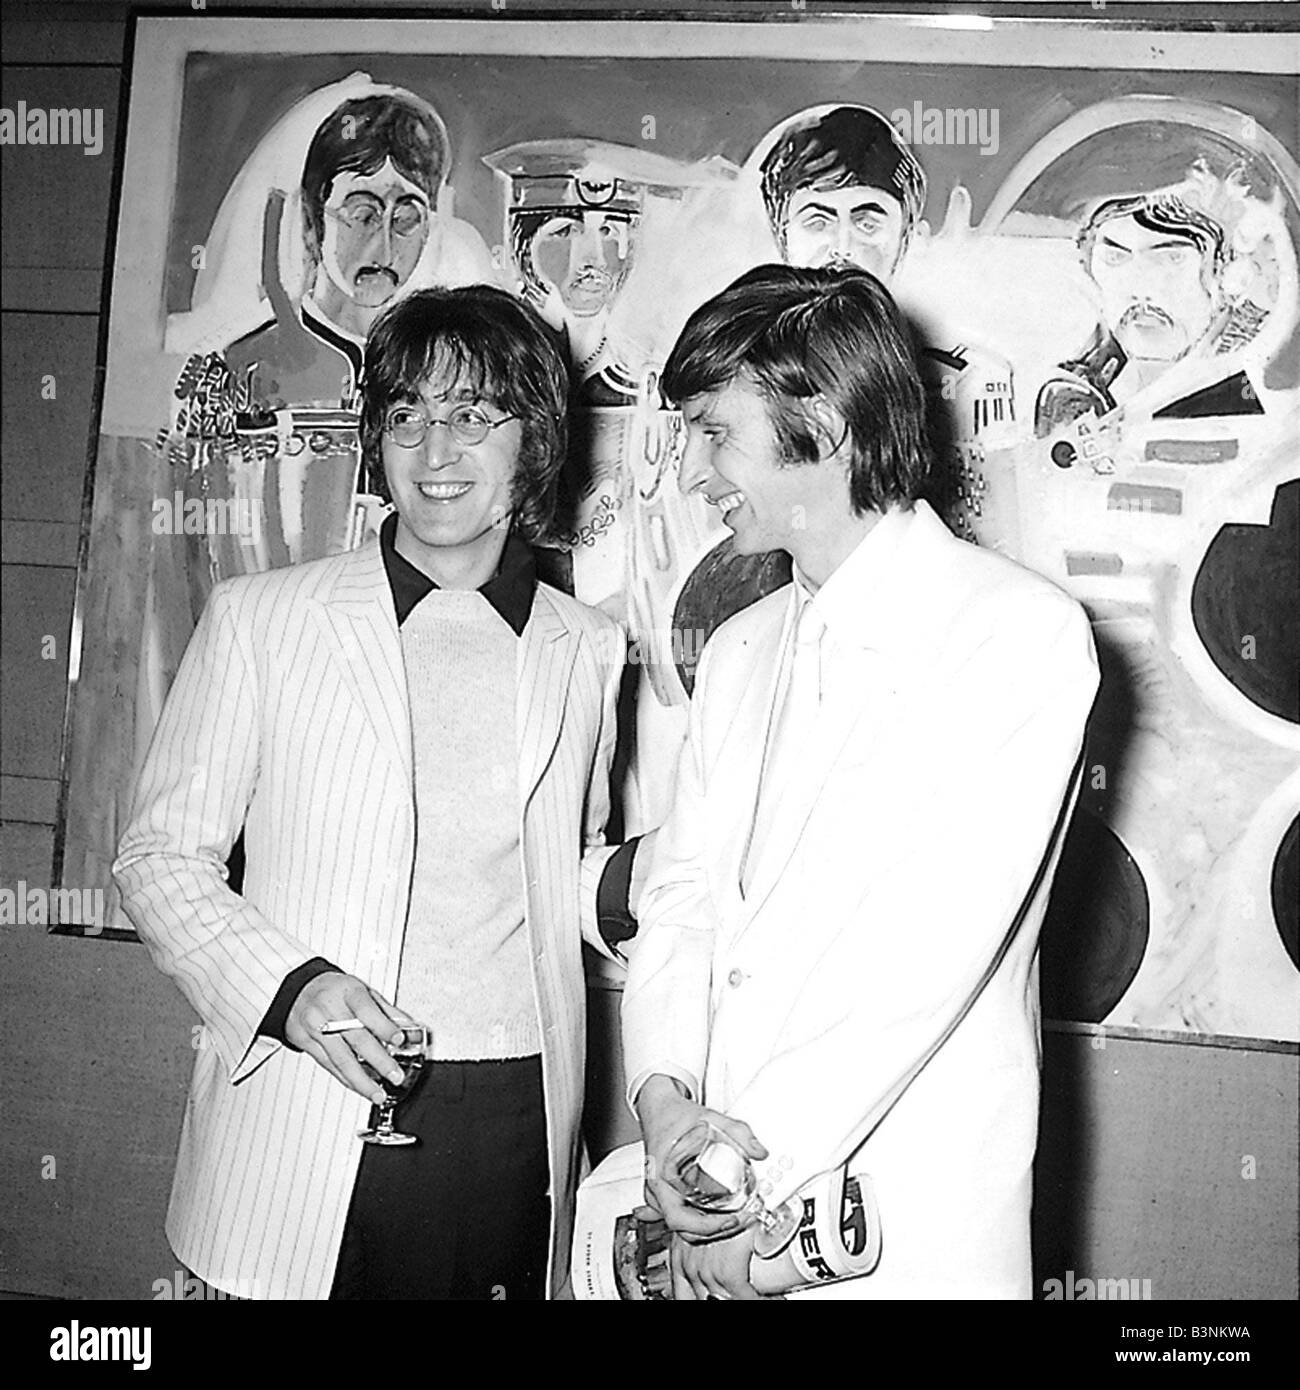 Beatles files 1967 John Lennon with artist Jonathon Hague at an art  exhibition at the Royal Institute gallery December 1967